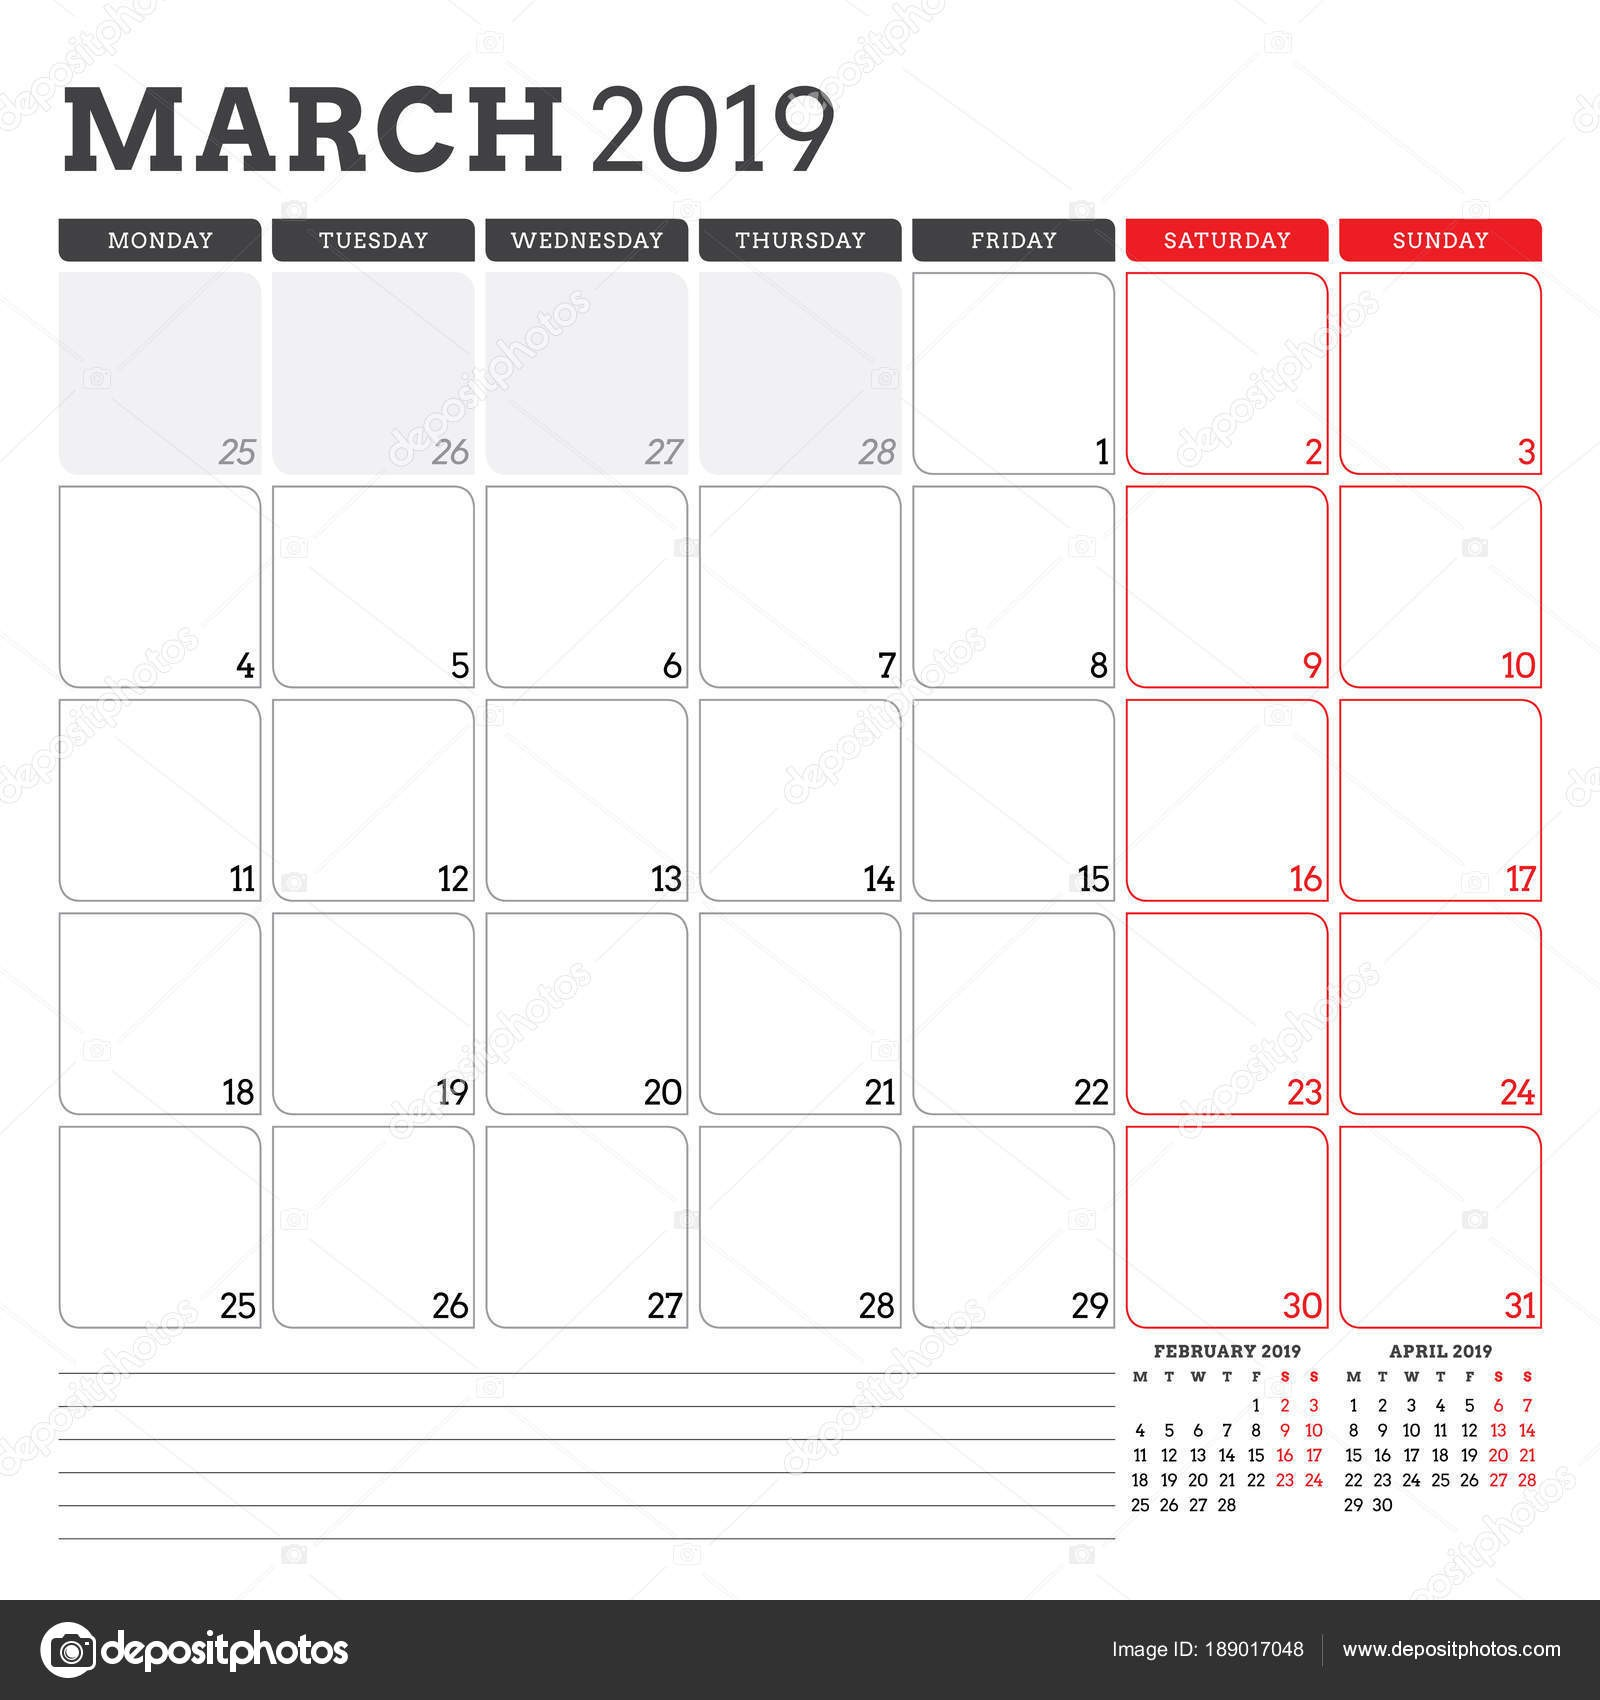 March Calendar 2019 Más Reciente Calendar Planner for March 2019 Week Starts On Monday Printable Of March Calendar 2019 Más Actual Odia Calendar 2019 with March Odishain